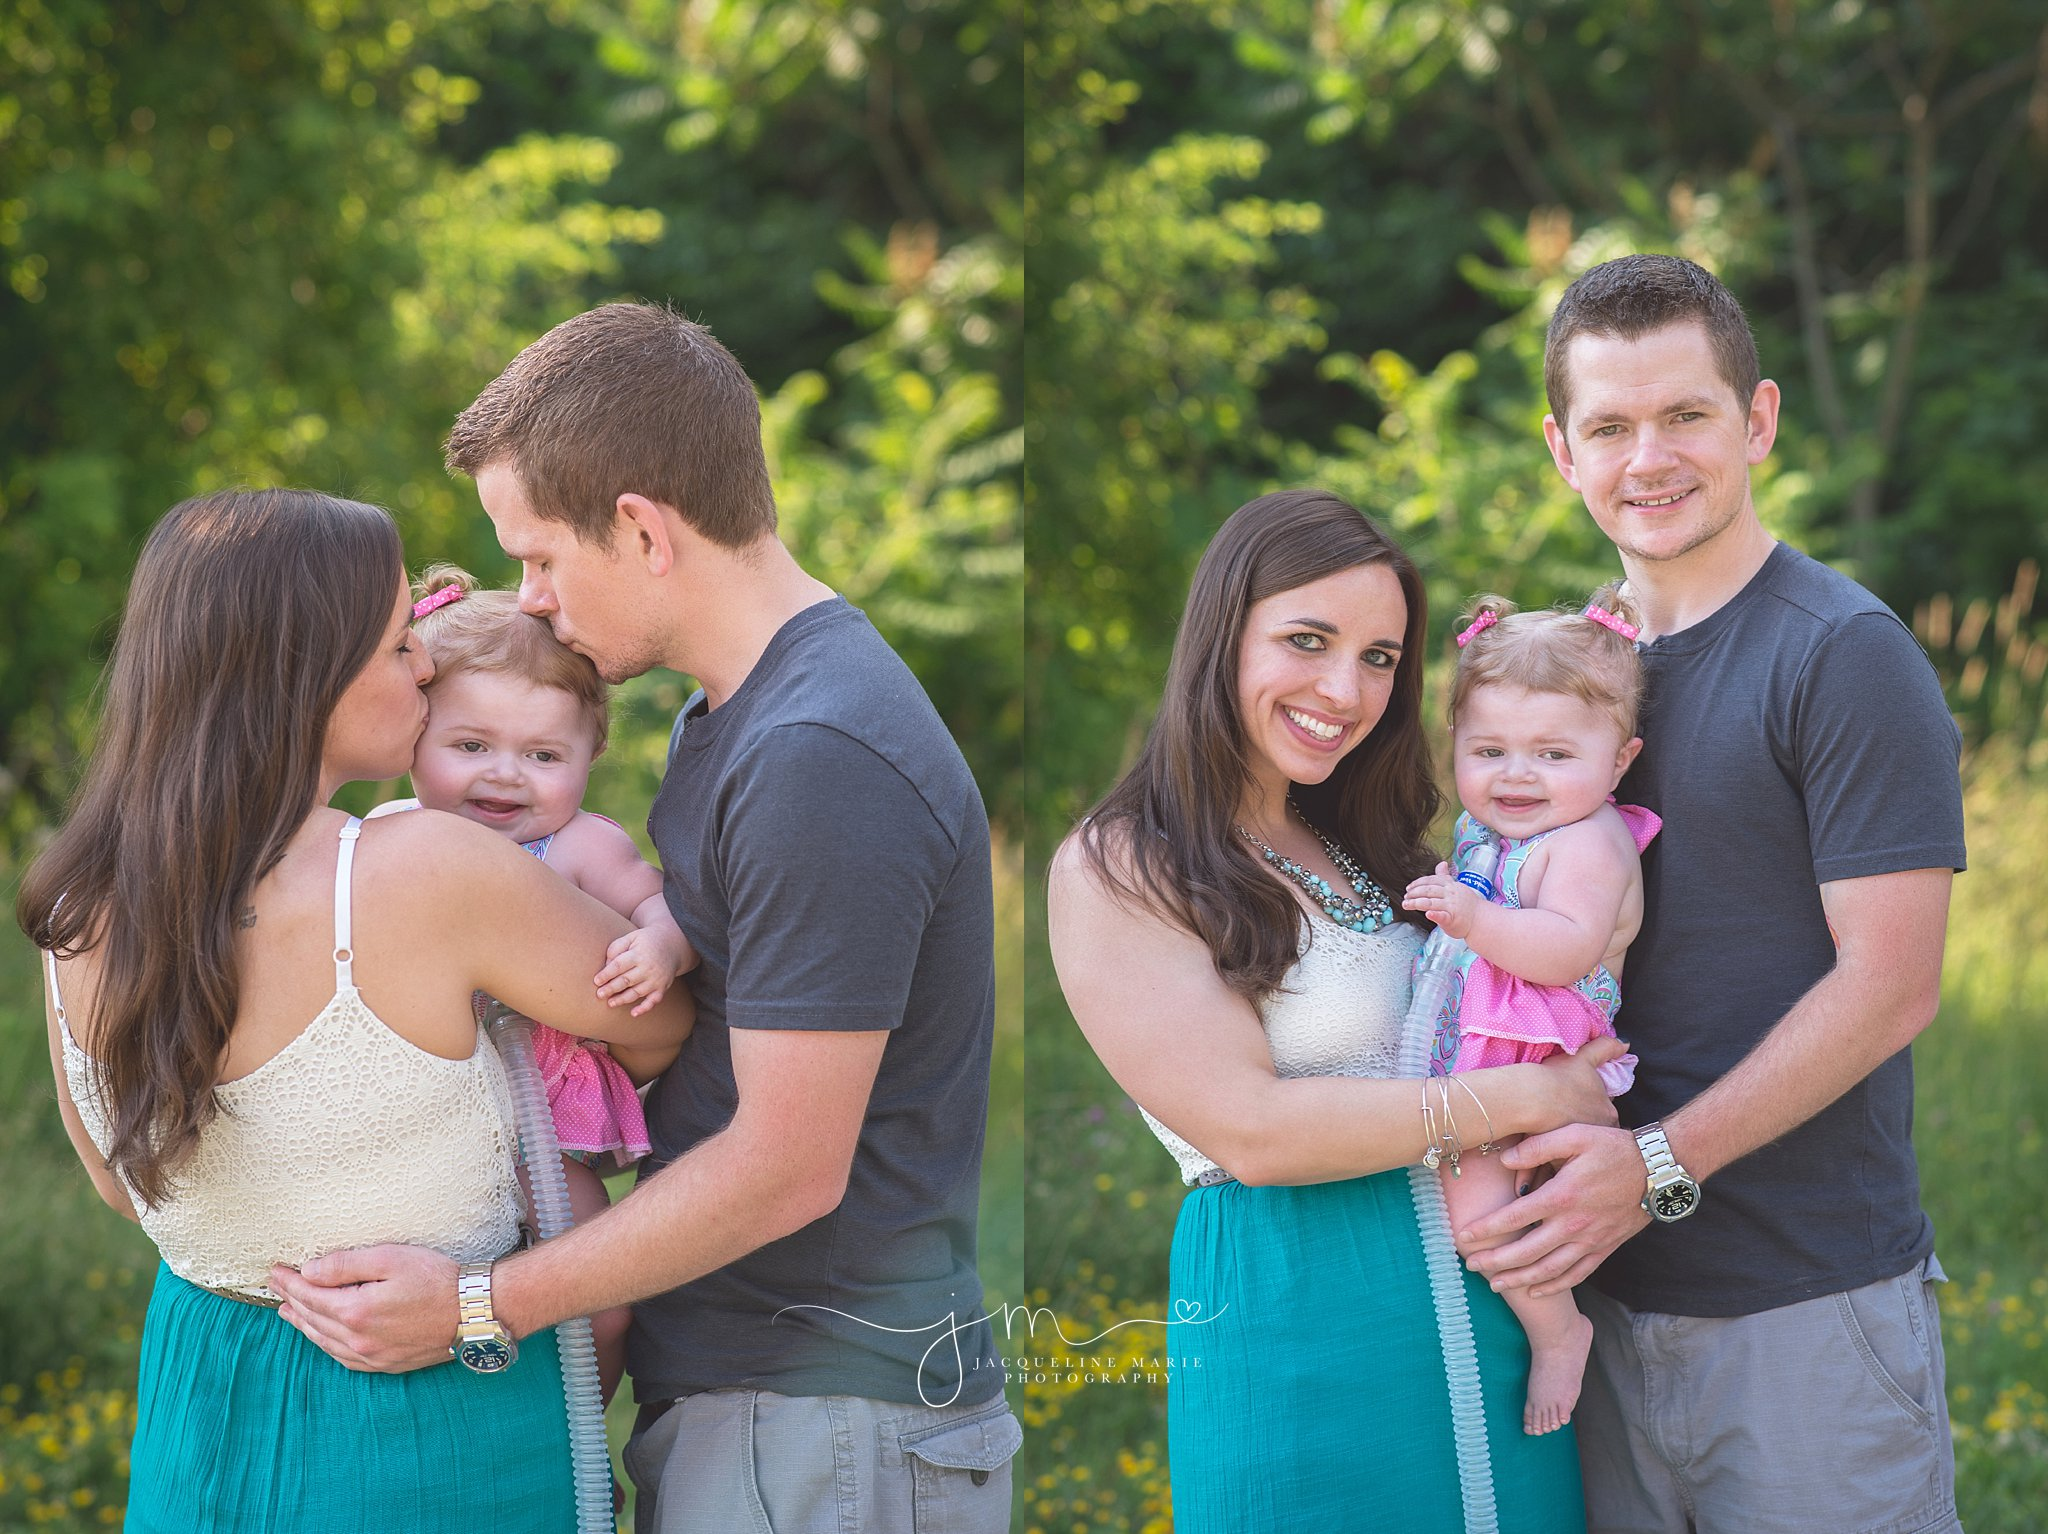 family photography Columbus, family portraits Columbus, parent with child pose